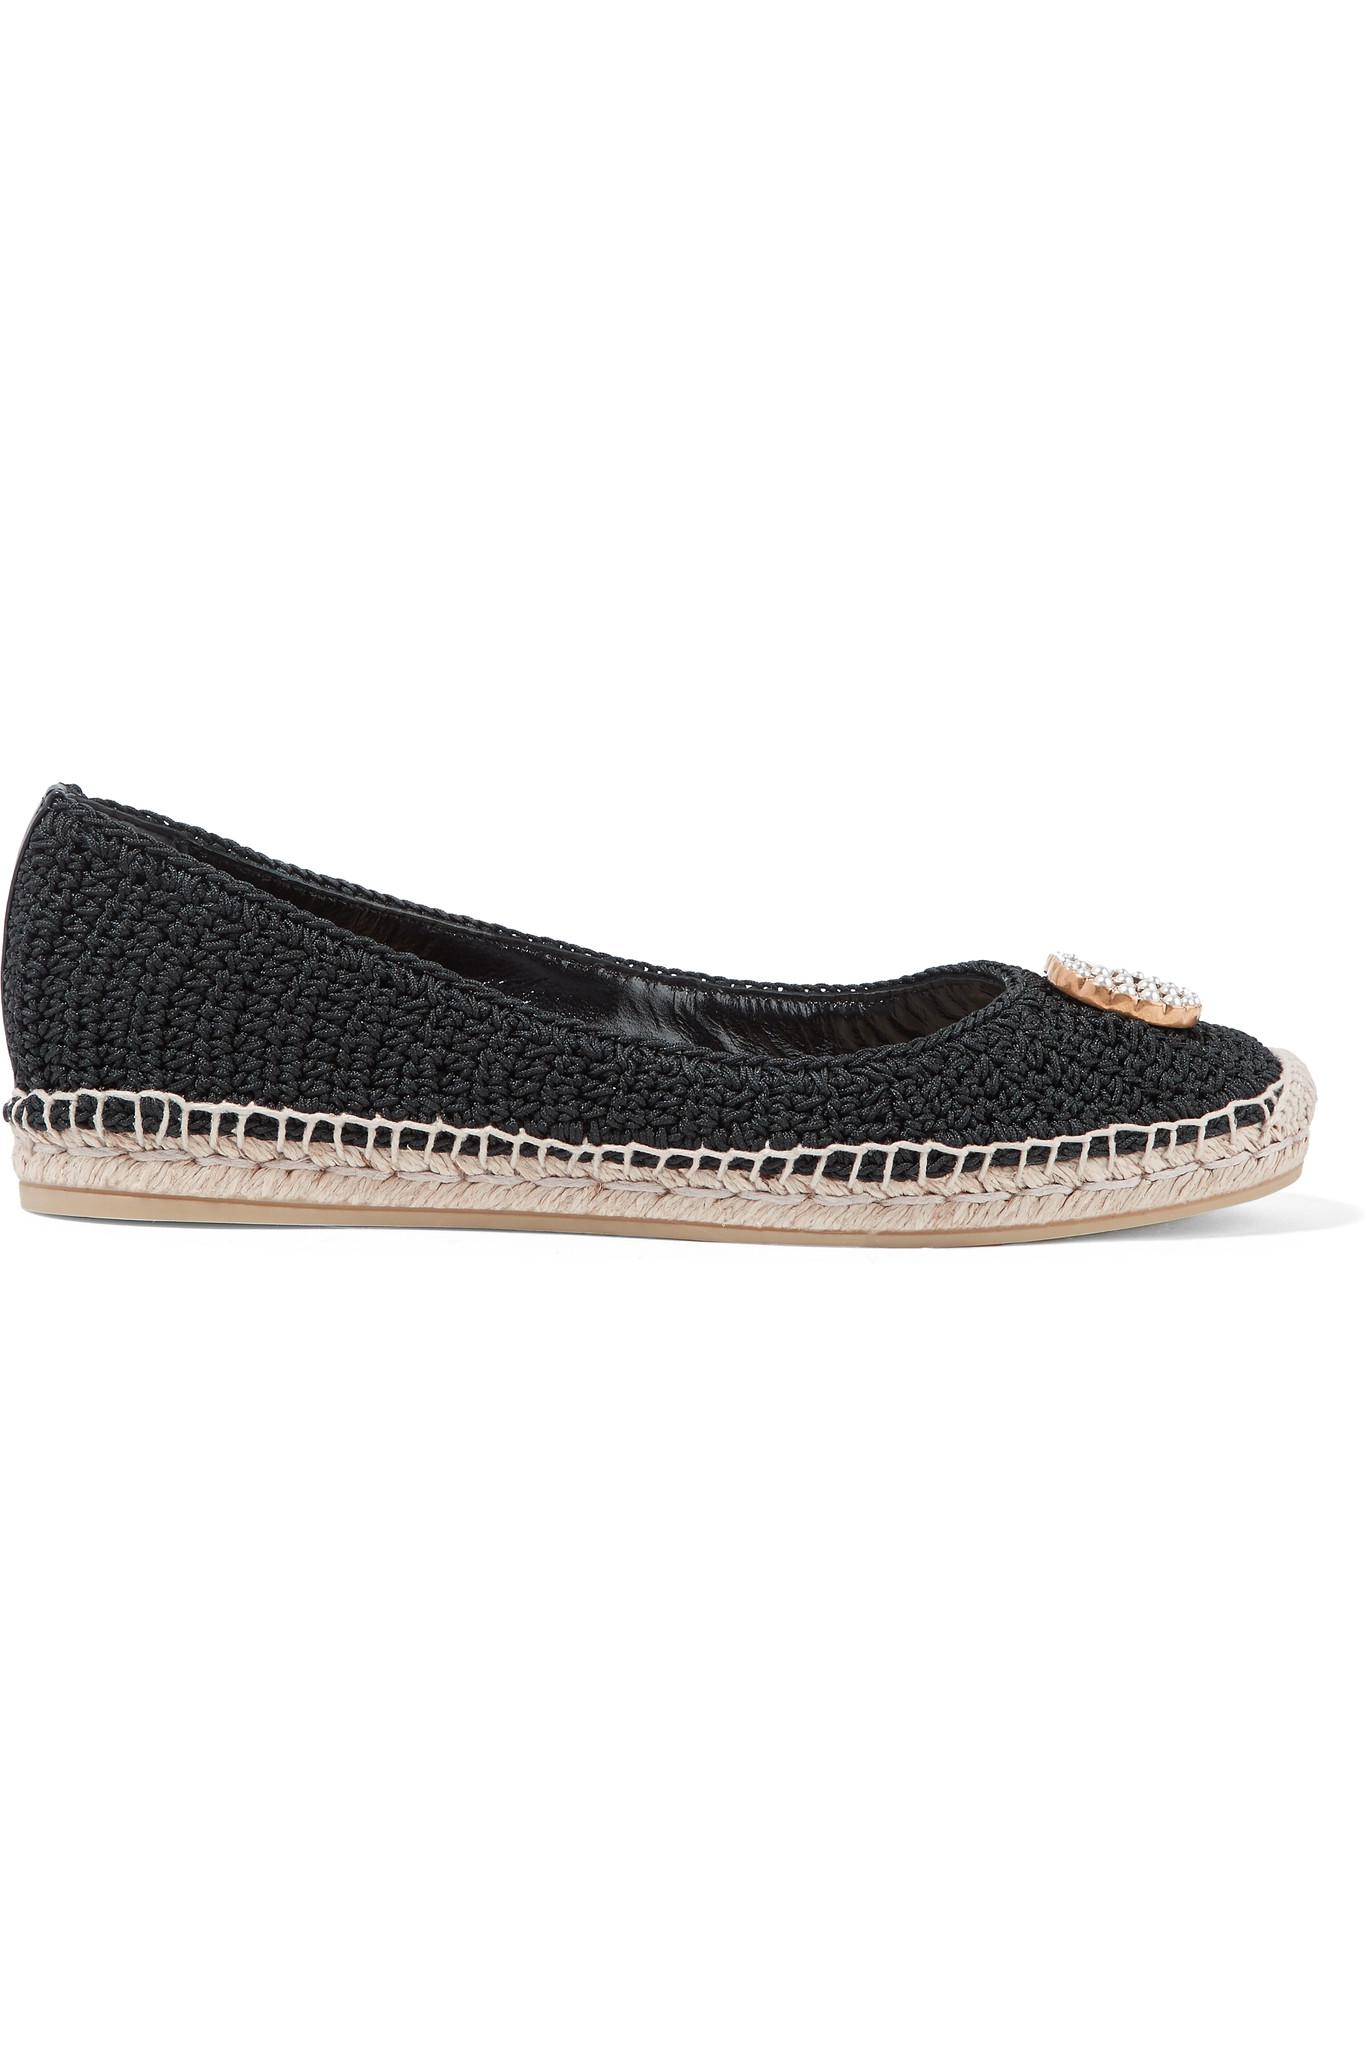 1cdb06cefae8 Gucci. Women s Black Lilibeth Logo-embellished Crocheted Cotton Espadrilles